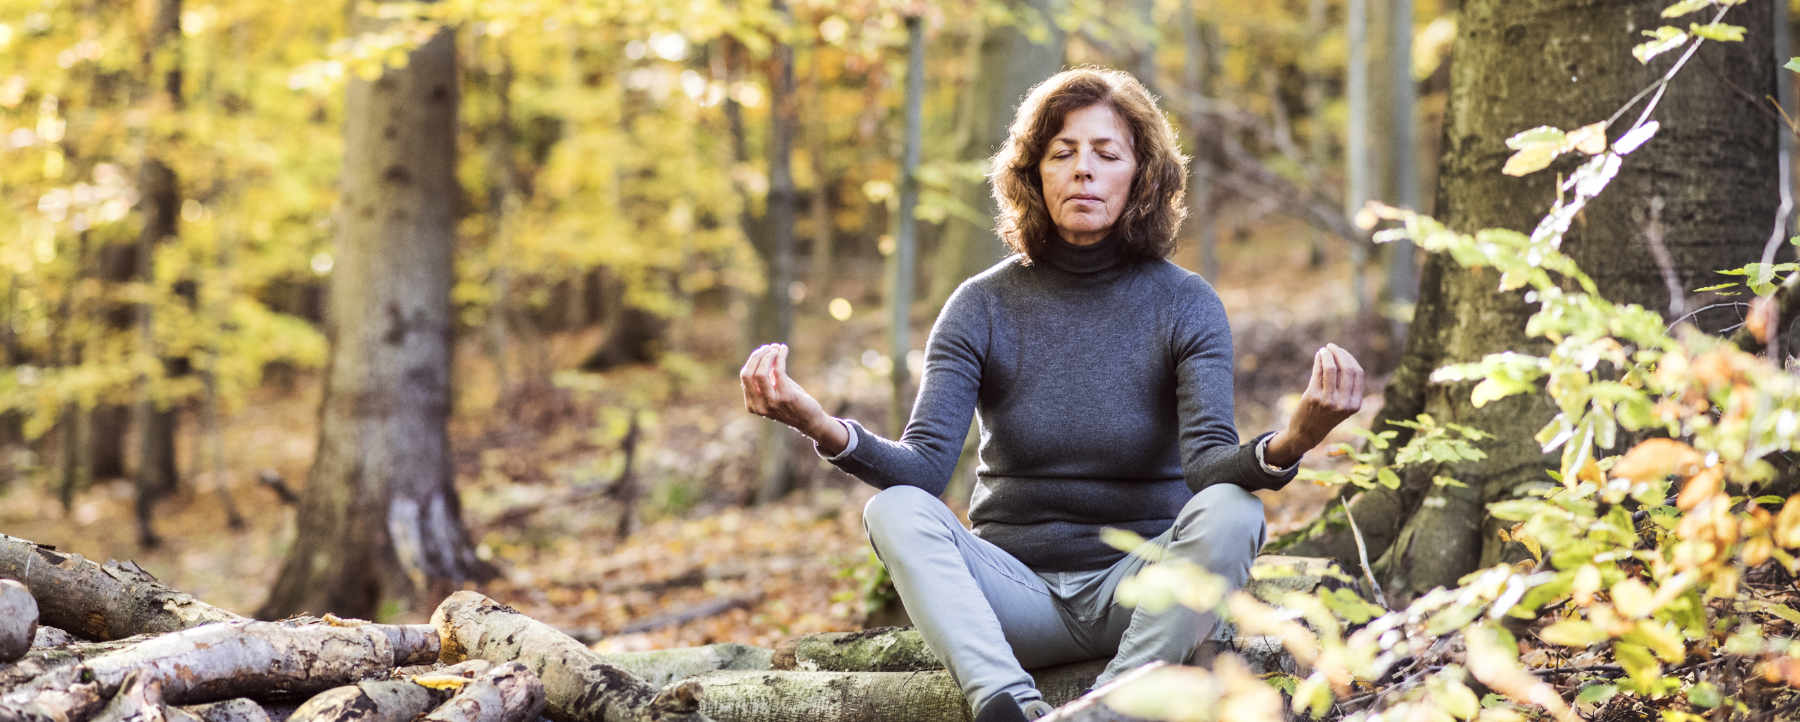 Image of a senior woman meditating in an autumn forest as content for wise living over 50s wellbeing guides - from improving memory to dealing with sleep problems